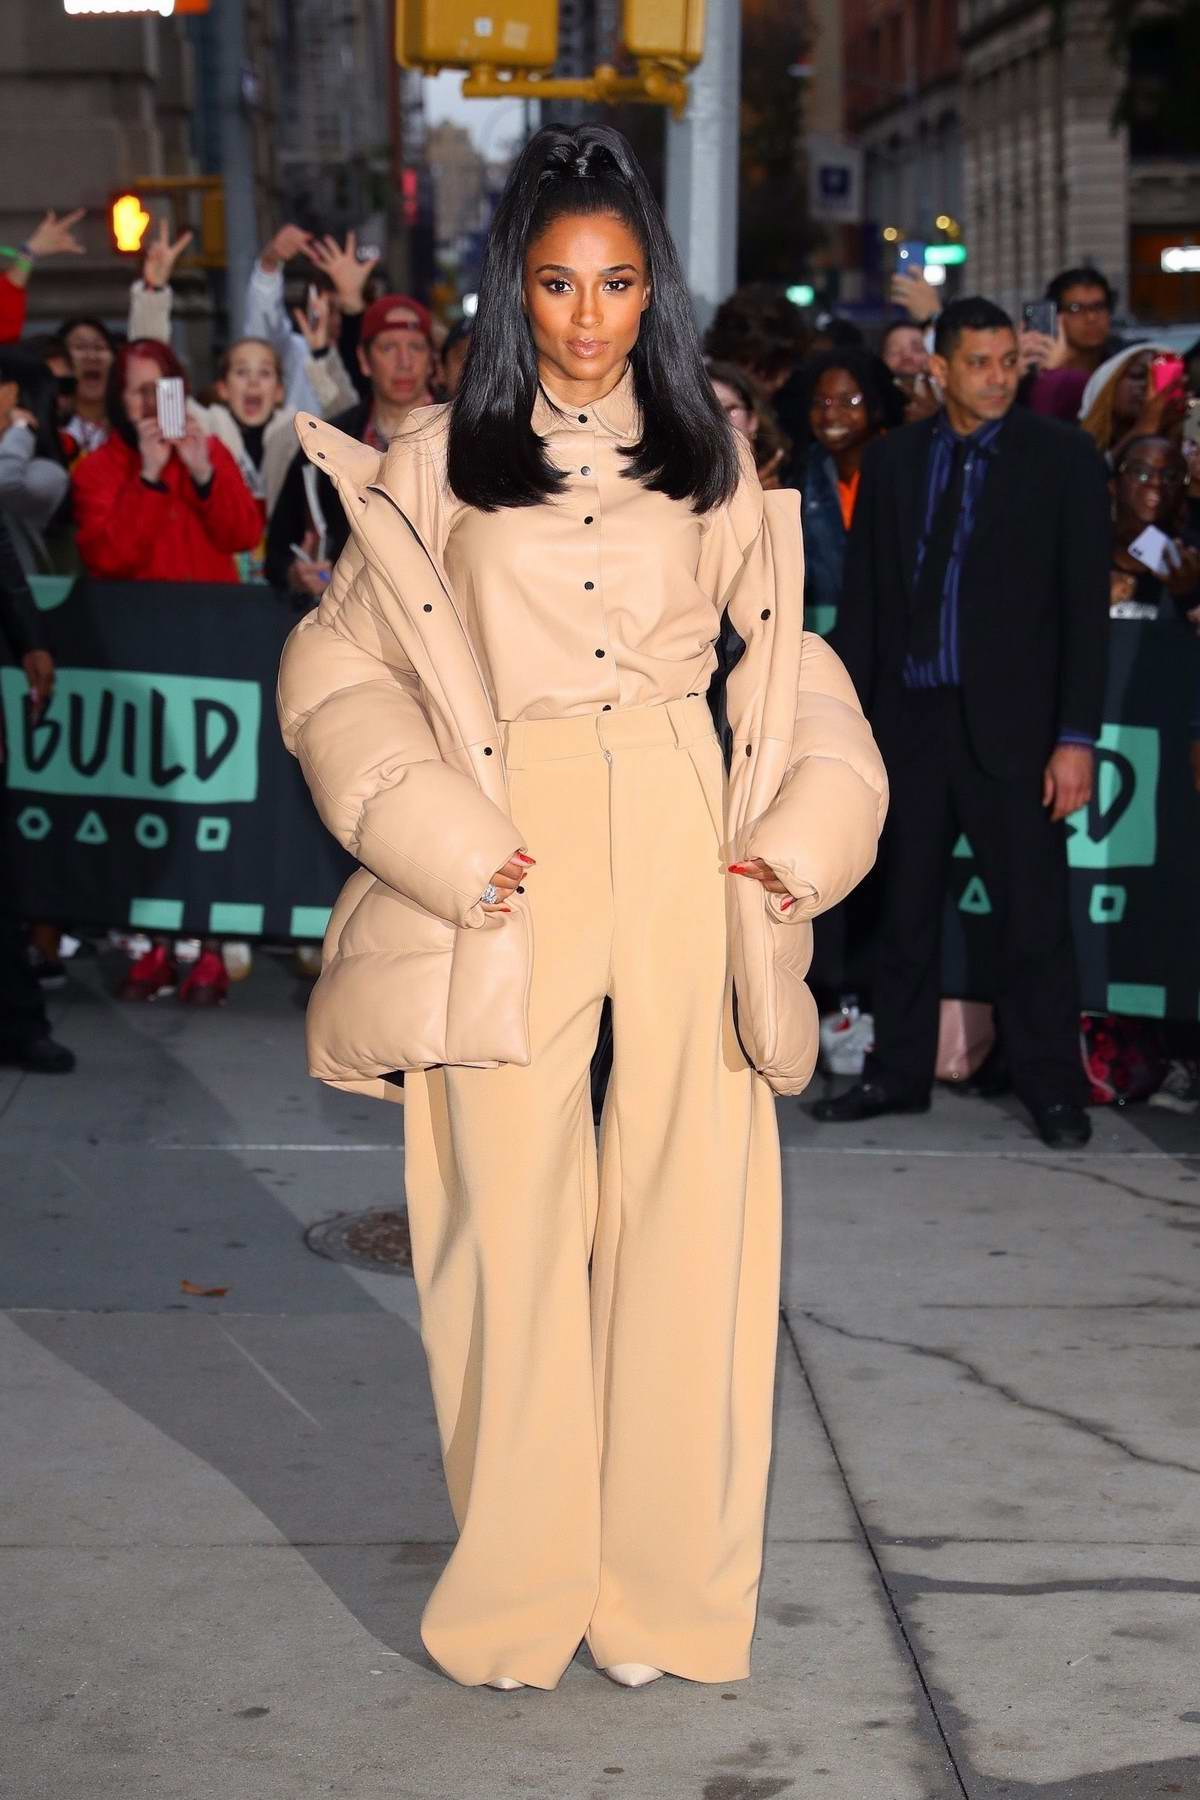 Ciara dressed in all beige ensemble while visiting Build Series in New York City